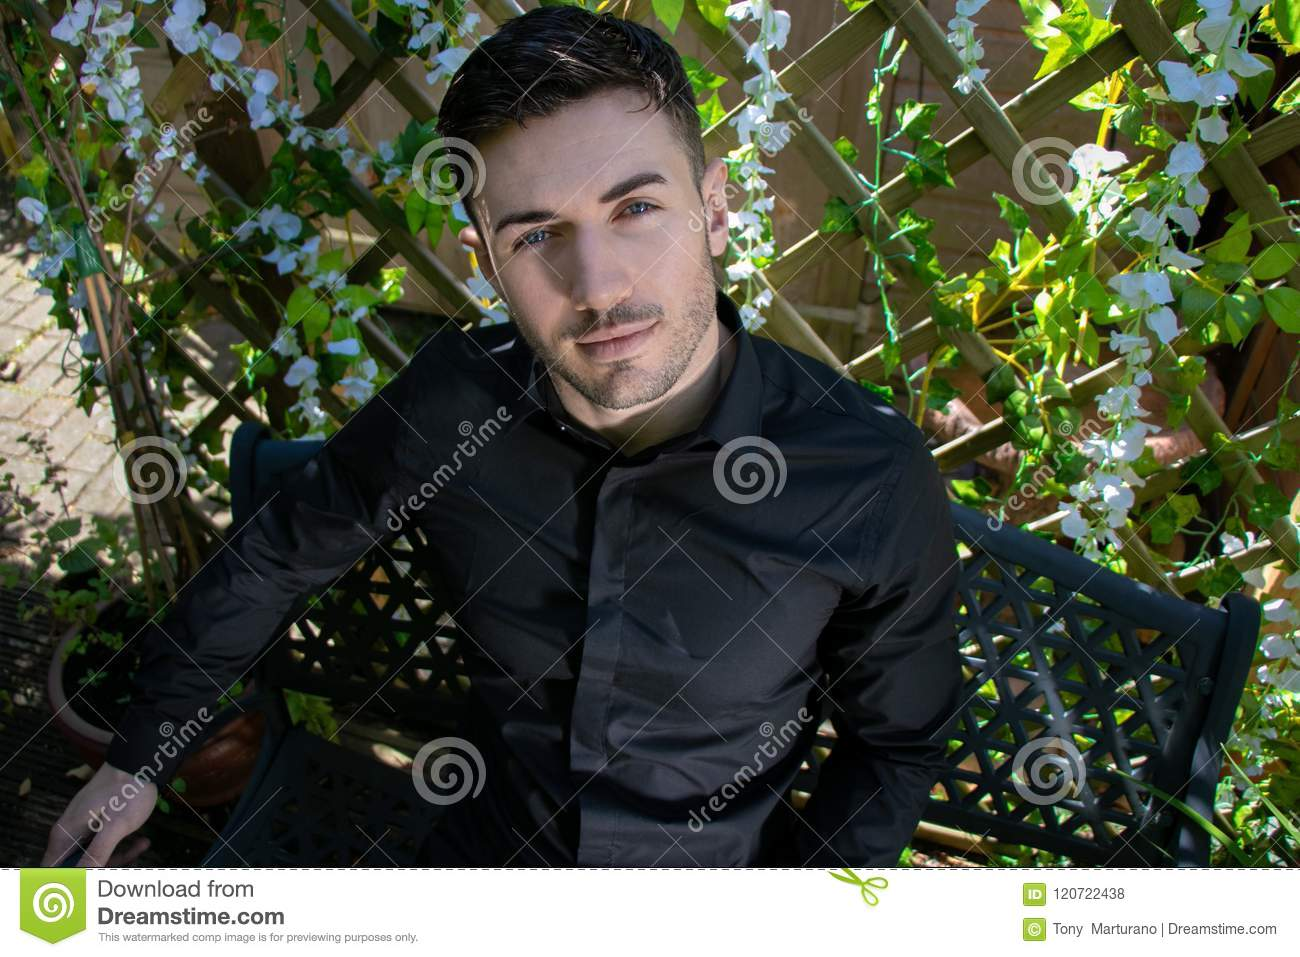 Handsome Man Wearing Black Shirt With Blue Eyes And Beard Looks Into